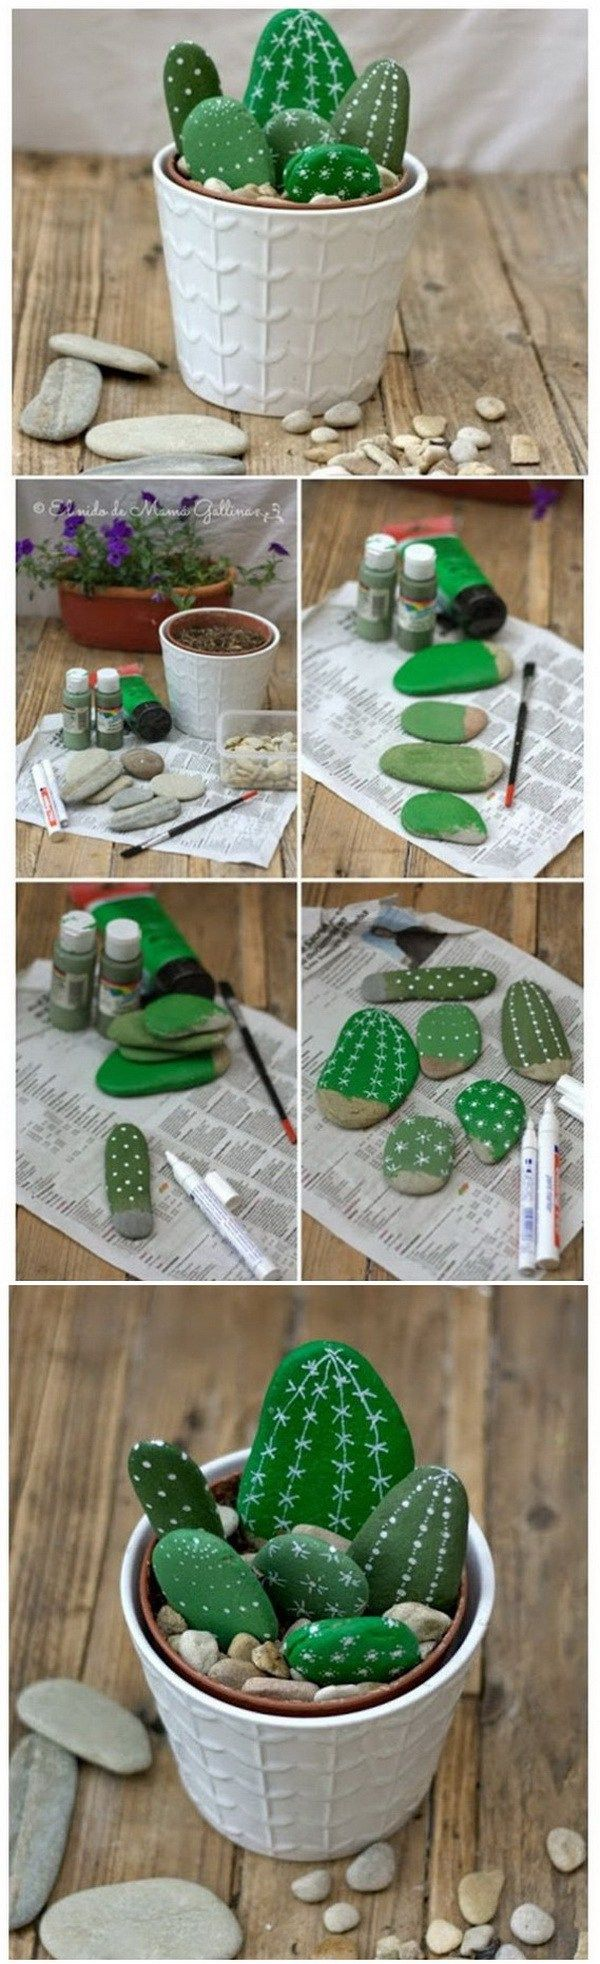 Painted Cactus Rocks. Rock painting has become very popular these days.  Pick up rocks